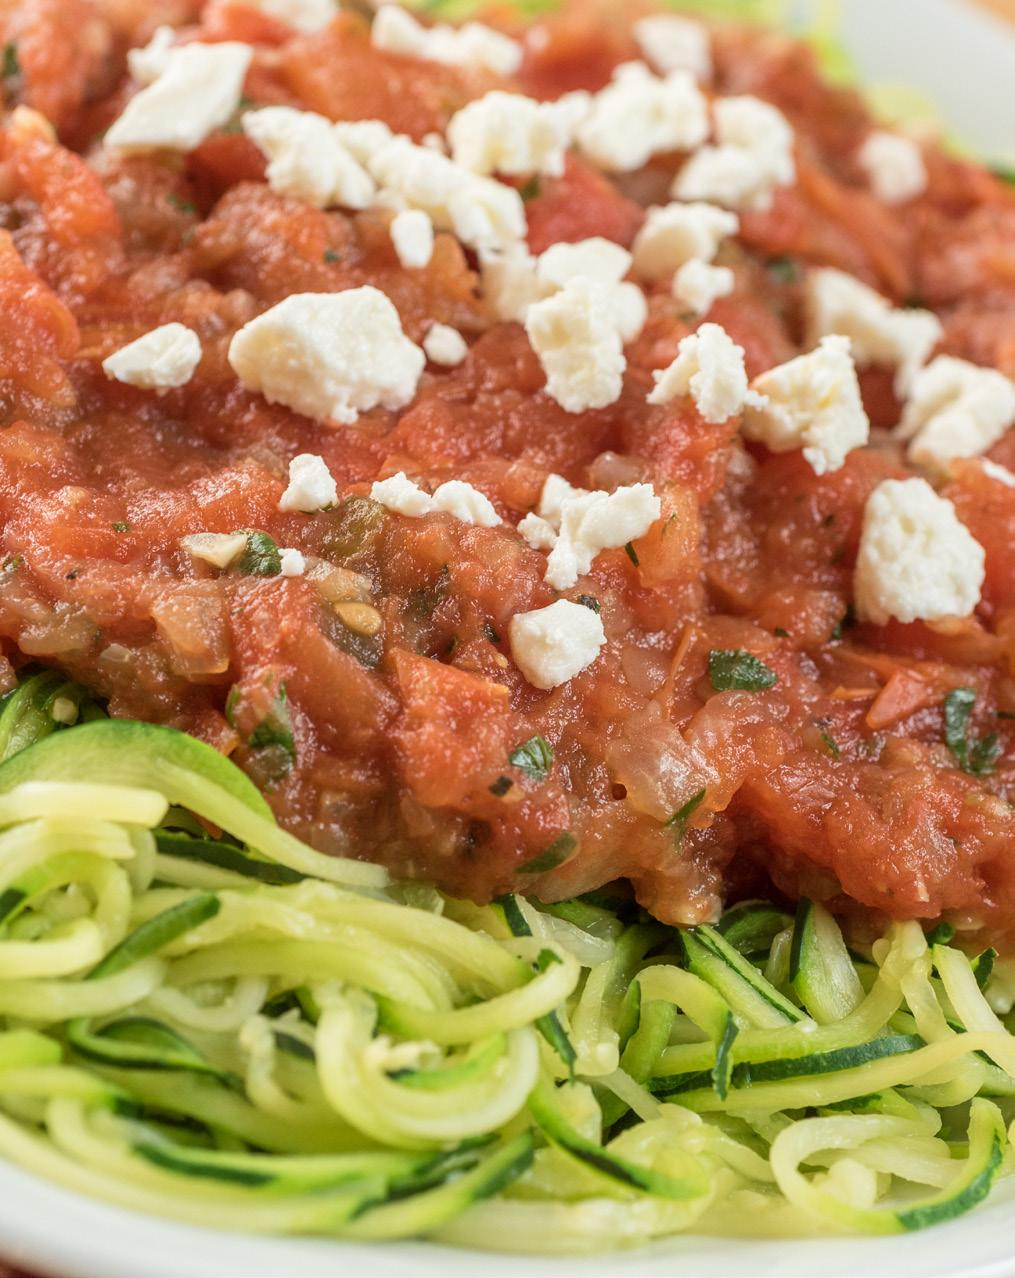 Zucchini Noodles with Salsa & Feta Serves: 4-6 4 medium zucchini 1 tablespoon olive oil 1 large onion, chopped 2 cloves garlic, chopped 4 pounds plum tomatoes, cored and chopped 1 small jalapeño